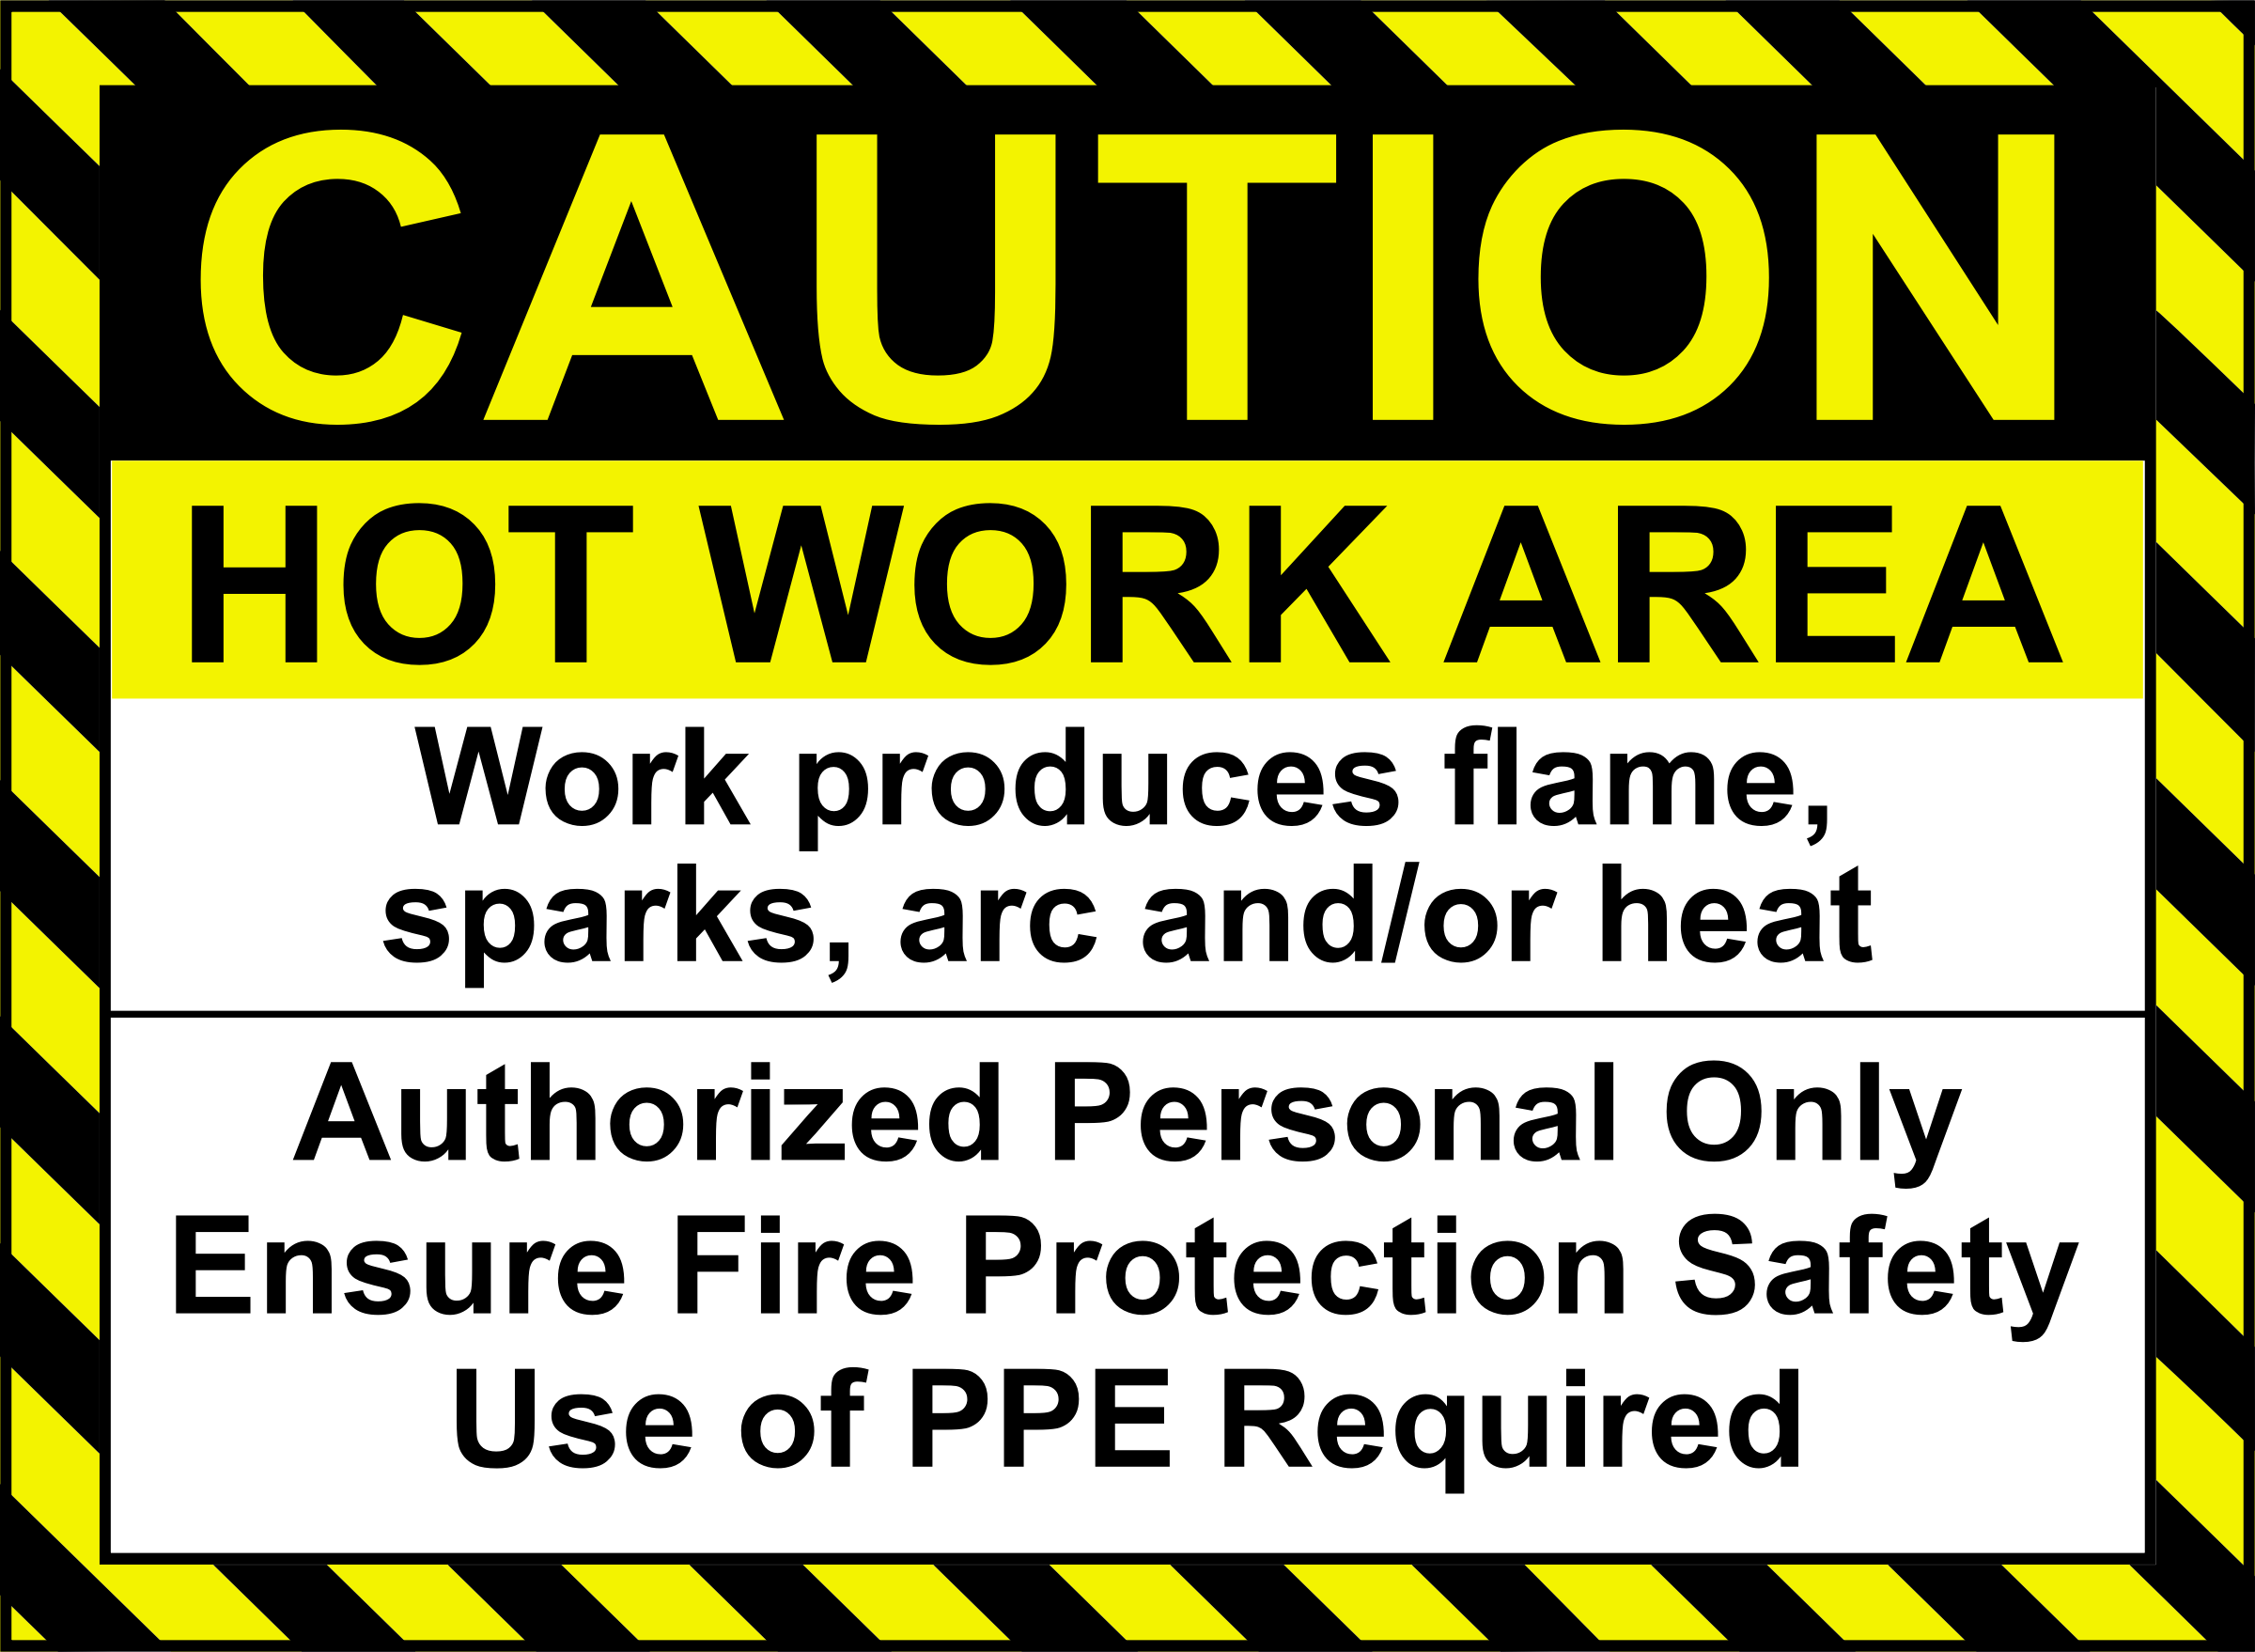 Welding clipart sparks. Hot work sign big